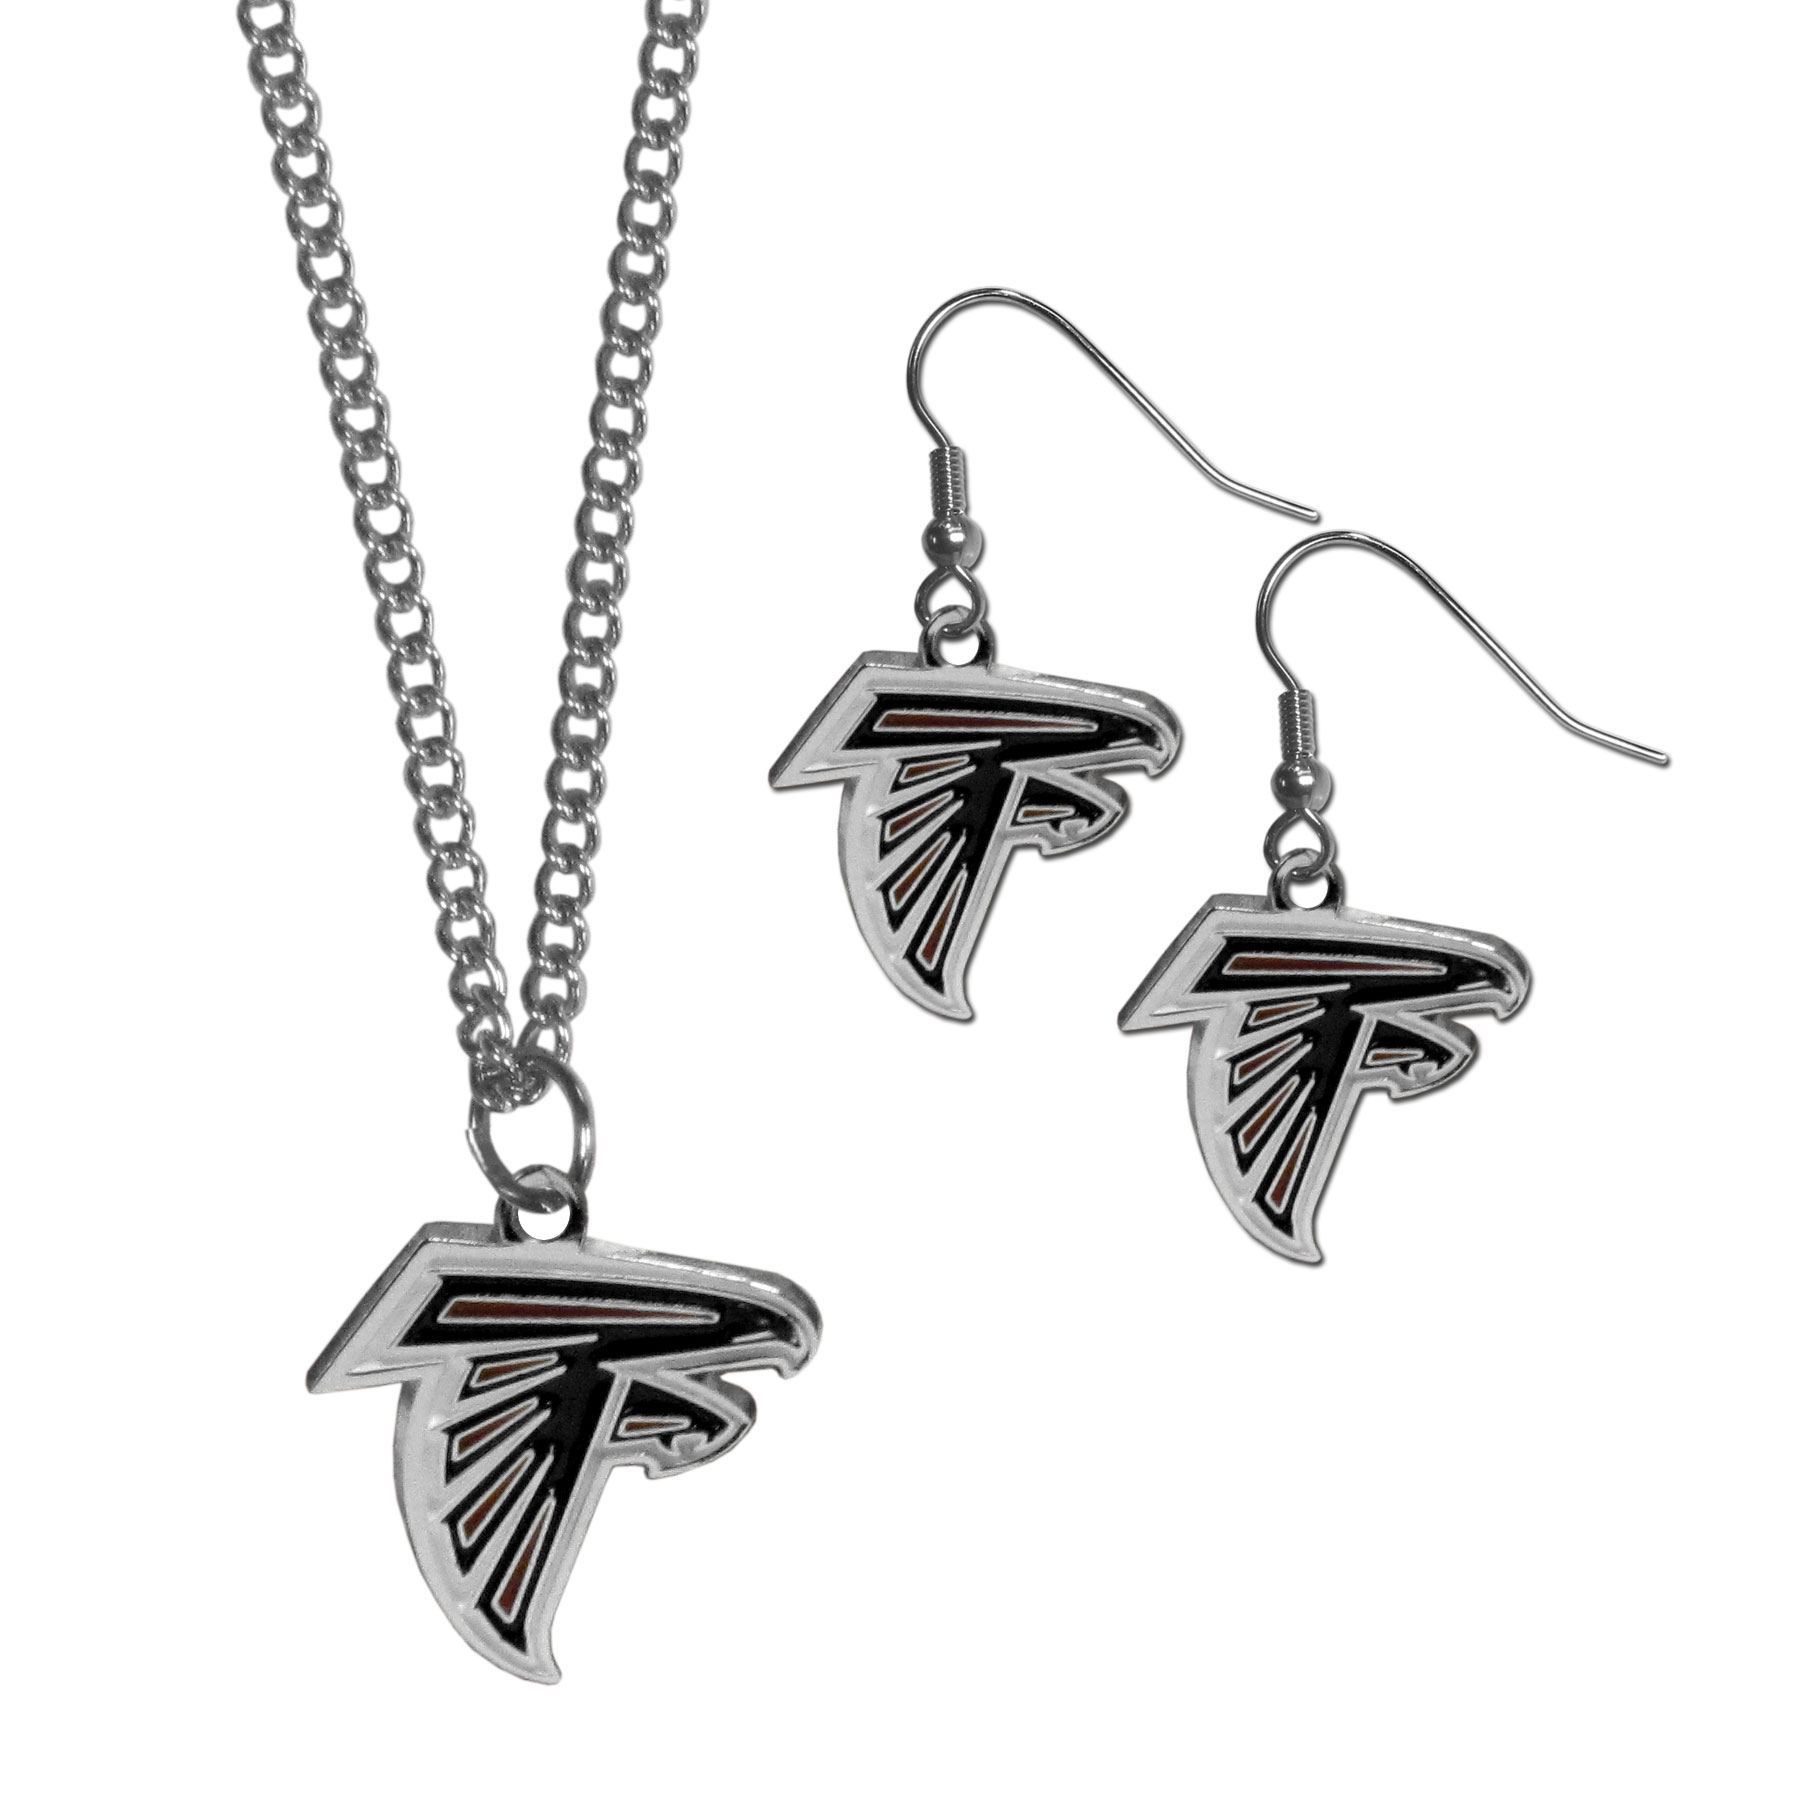 Atlanta Falcons Dangle Earrings and Chain Necklace Set - This classic jewelry set contains are most popular Atlanta Falcons dangle earrings and 22 inch chain necklace. The trendy, dangle earrings are lightweight and feature a fully cast metal team charm with enameled team colors. The matching necklace completes this fashion forward combo and is a spirited set that is perfect for game day but nice enough for everyday.